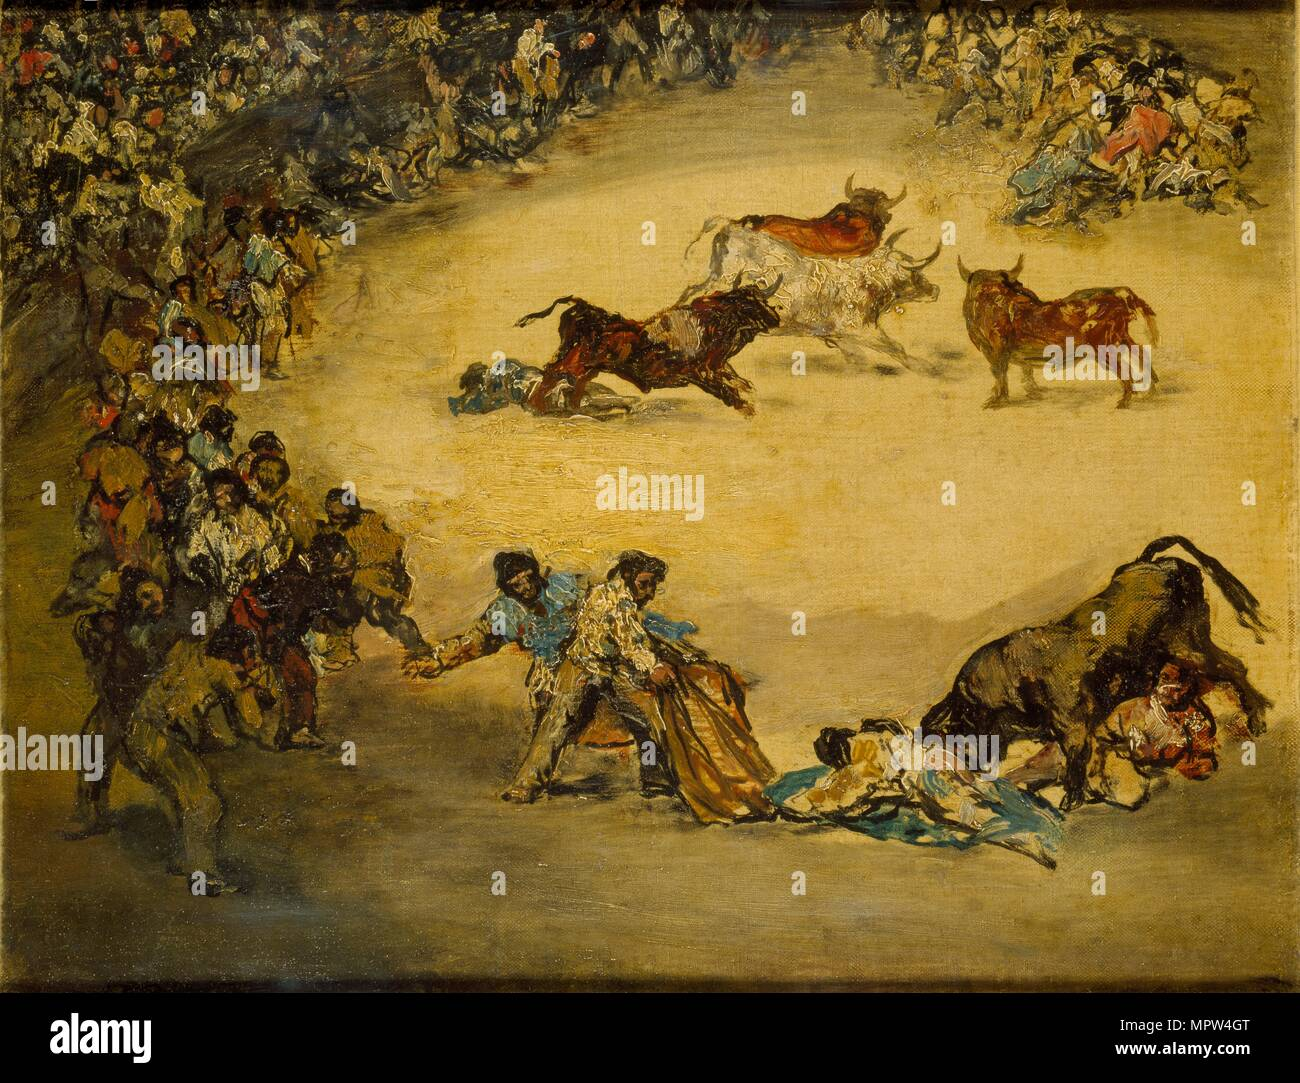 Scene at a Bullfight: Diversion de Espana, c1766-1828. Artist: Francisco  Goya.